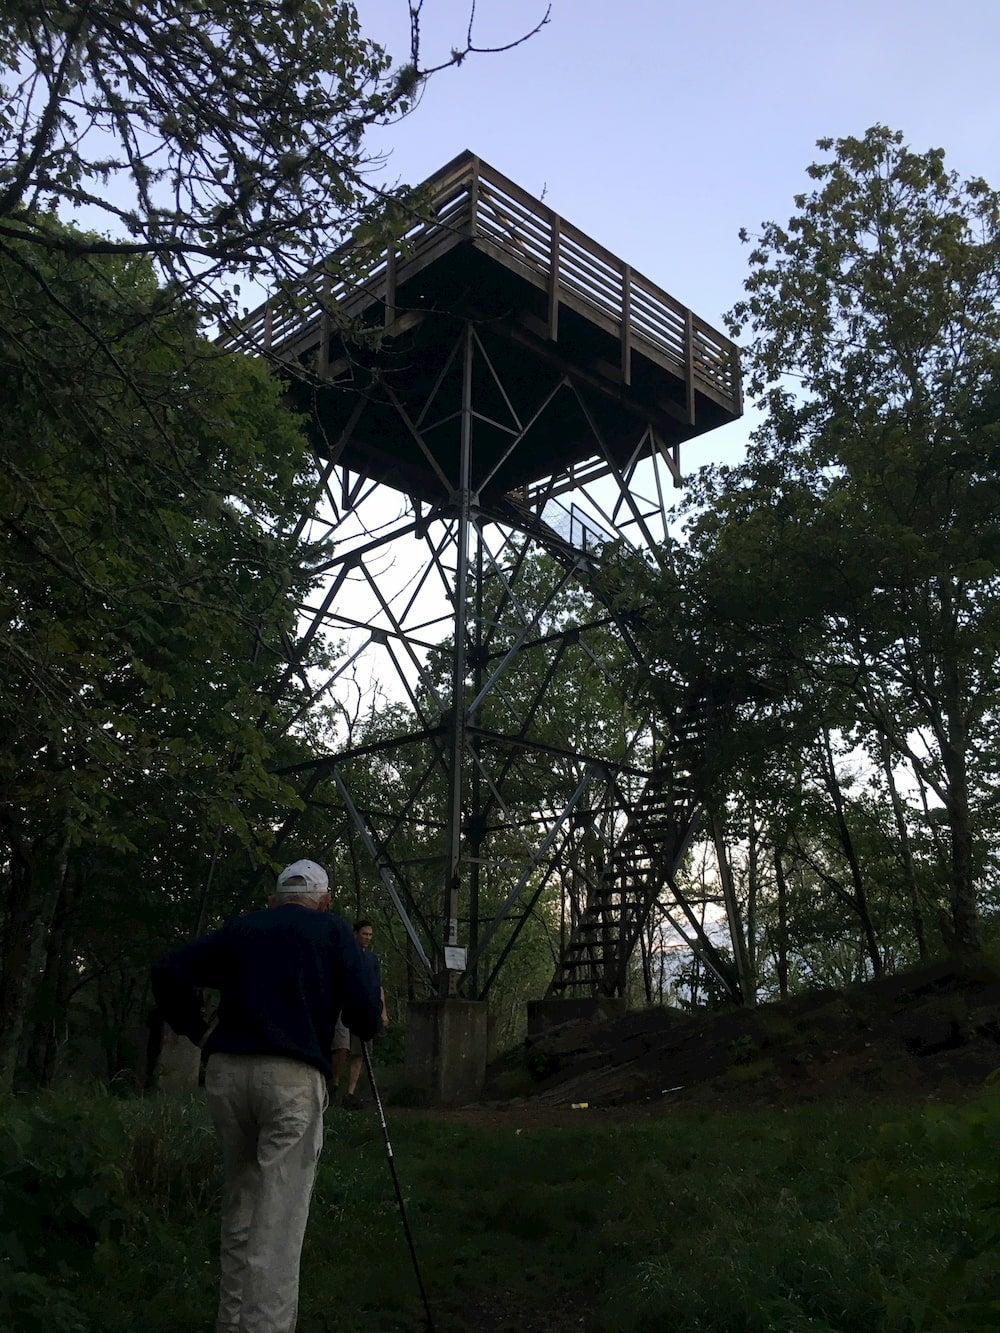 Man hiking in foreground with fire tower and trees visible above him